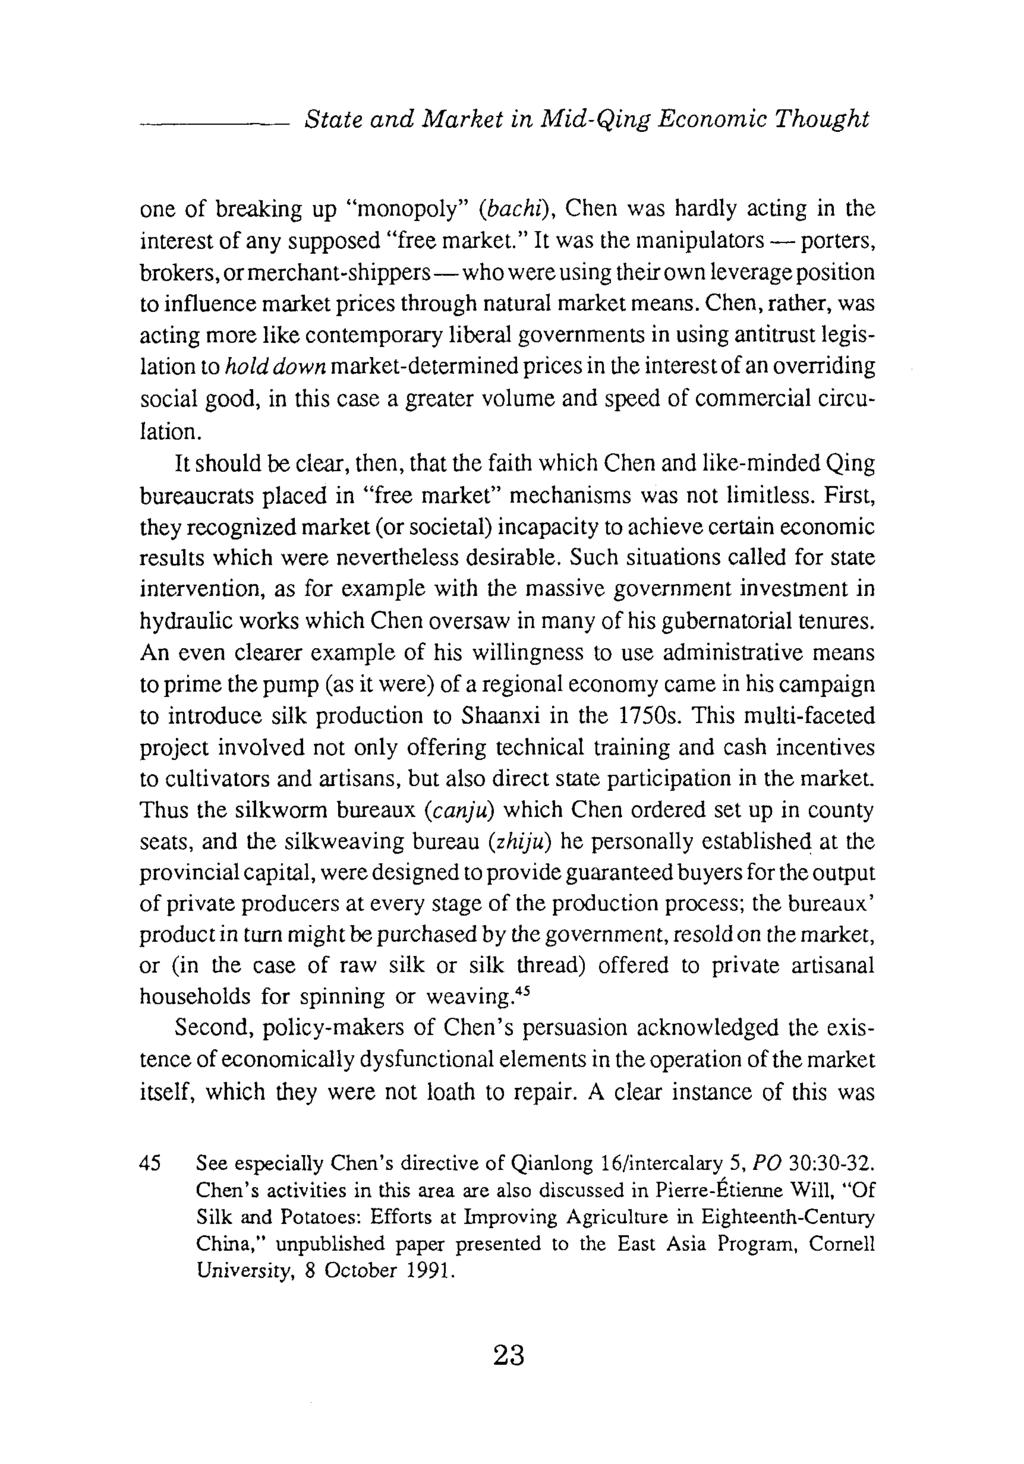 State and Market in Mid-Qing Economie Thought  The Case of